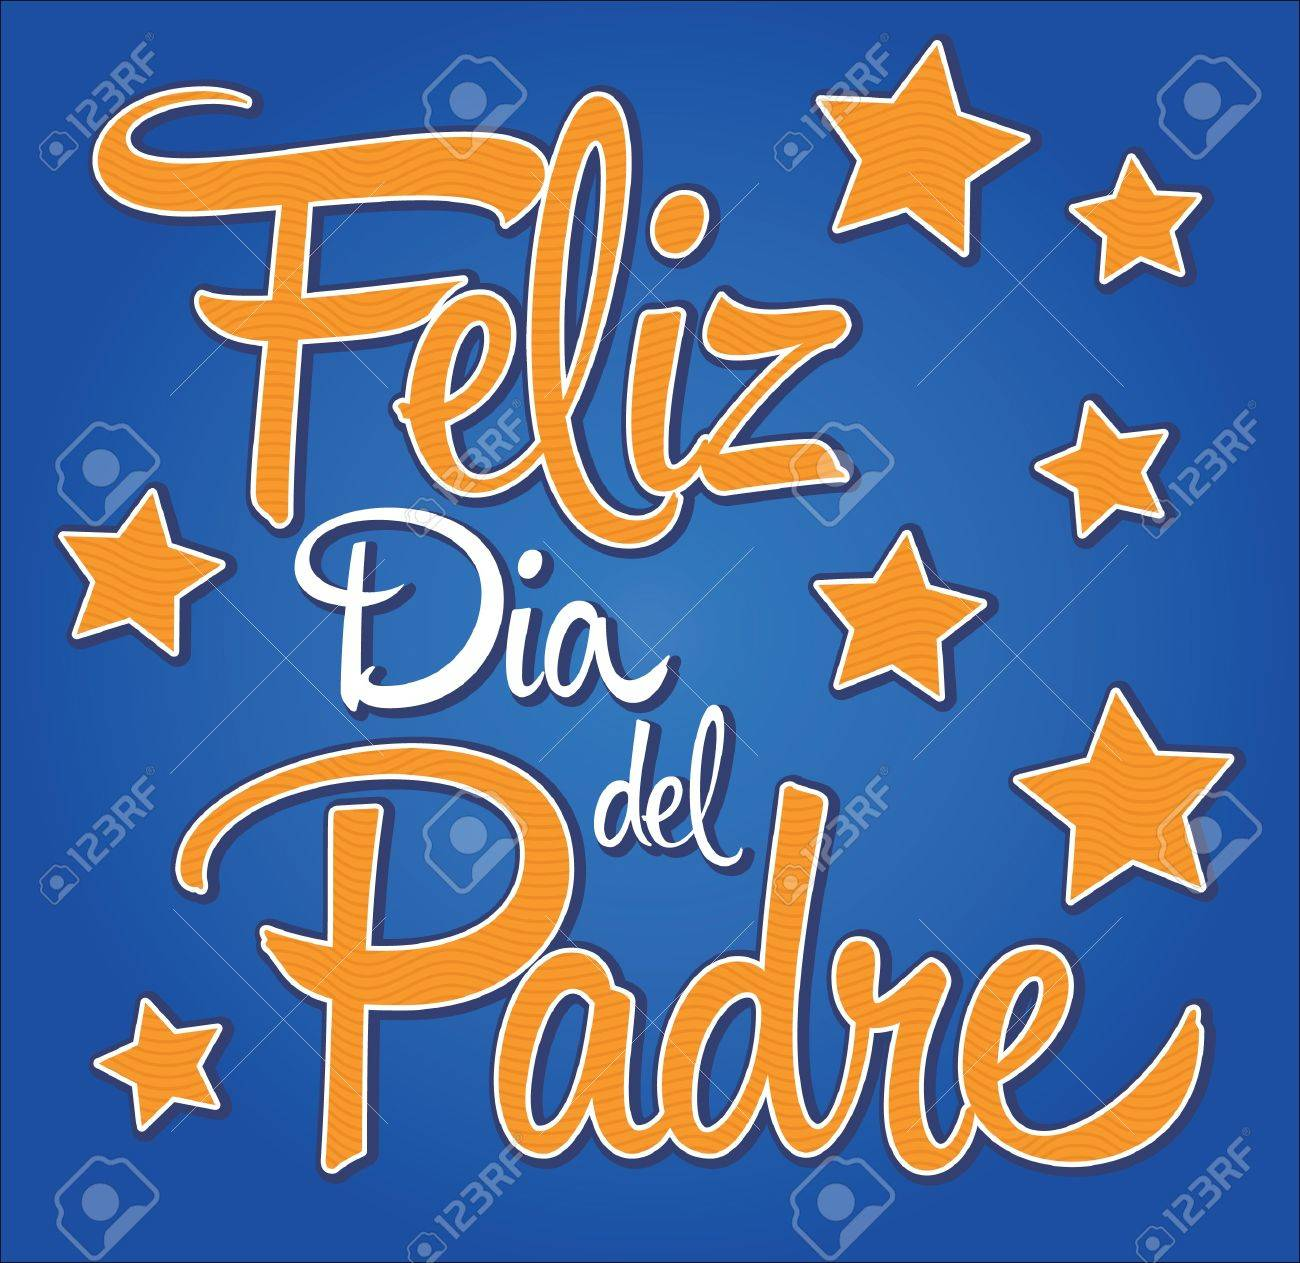 feliz dia de padre spanish text happy fathers day card royalty